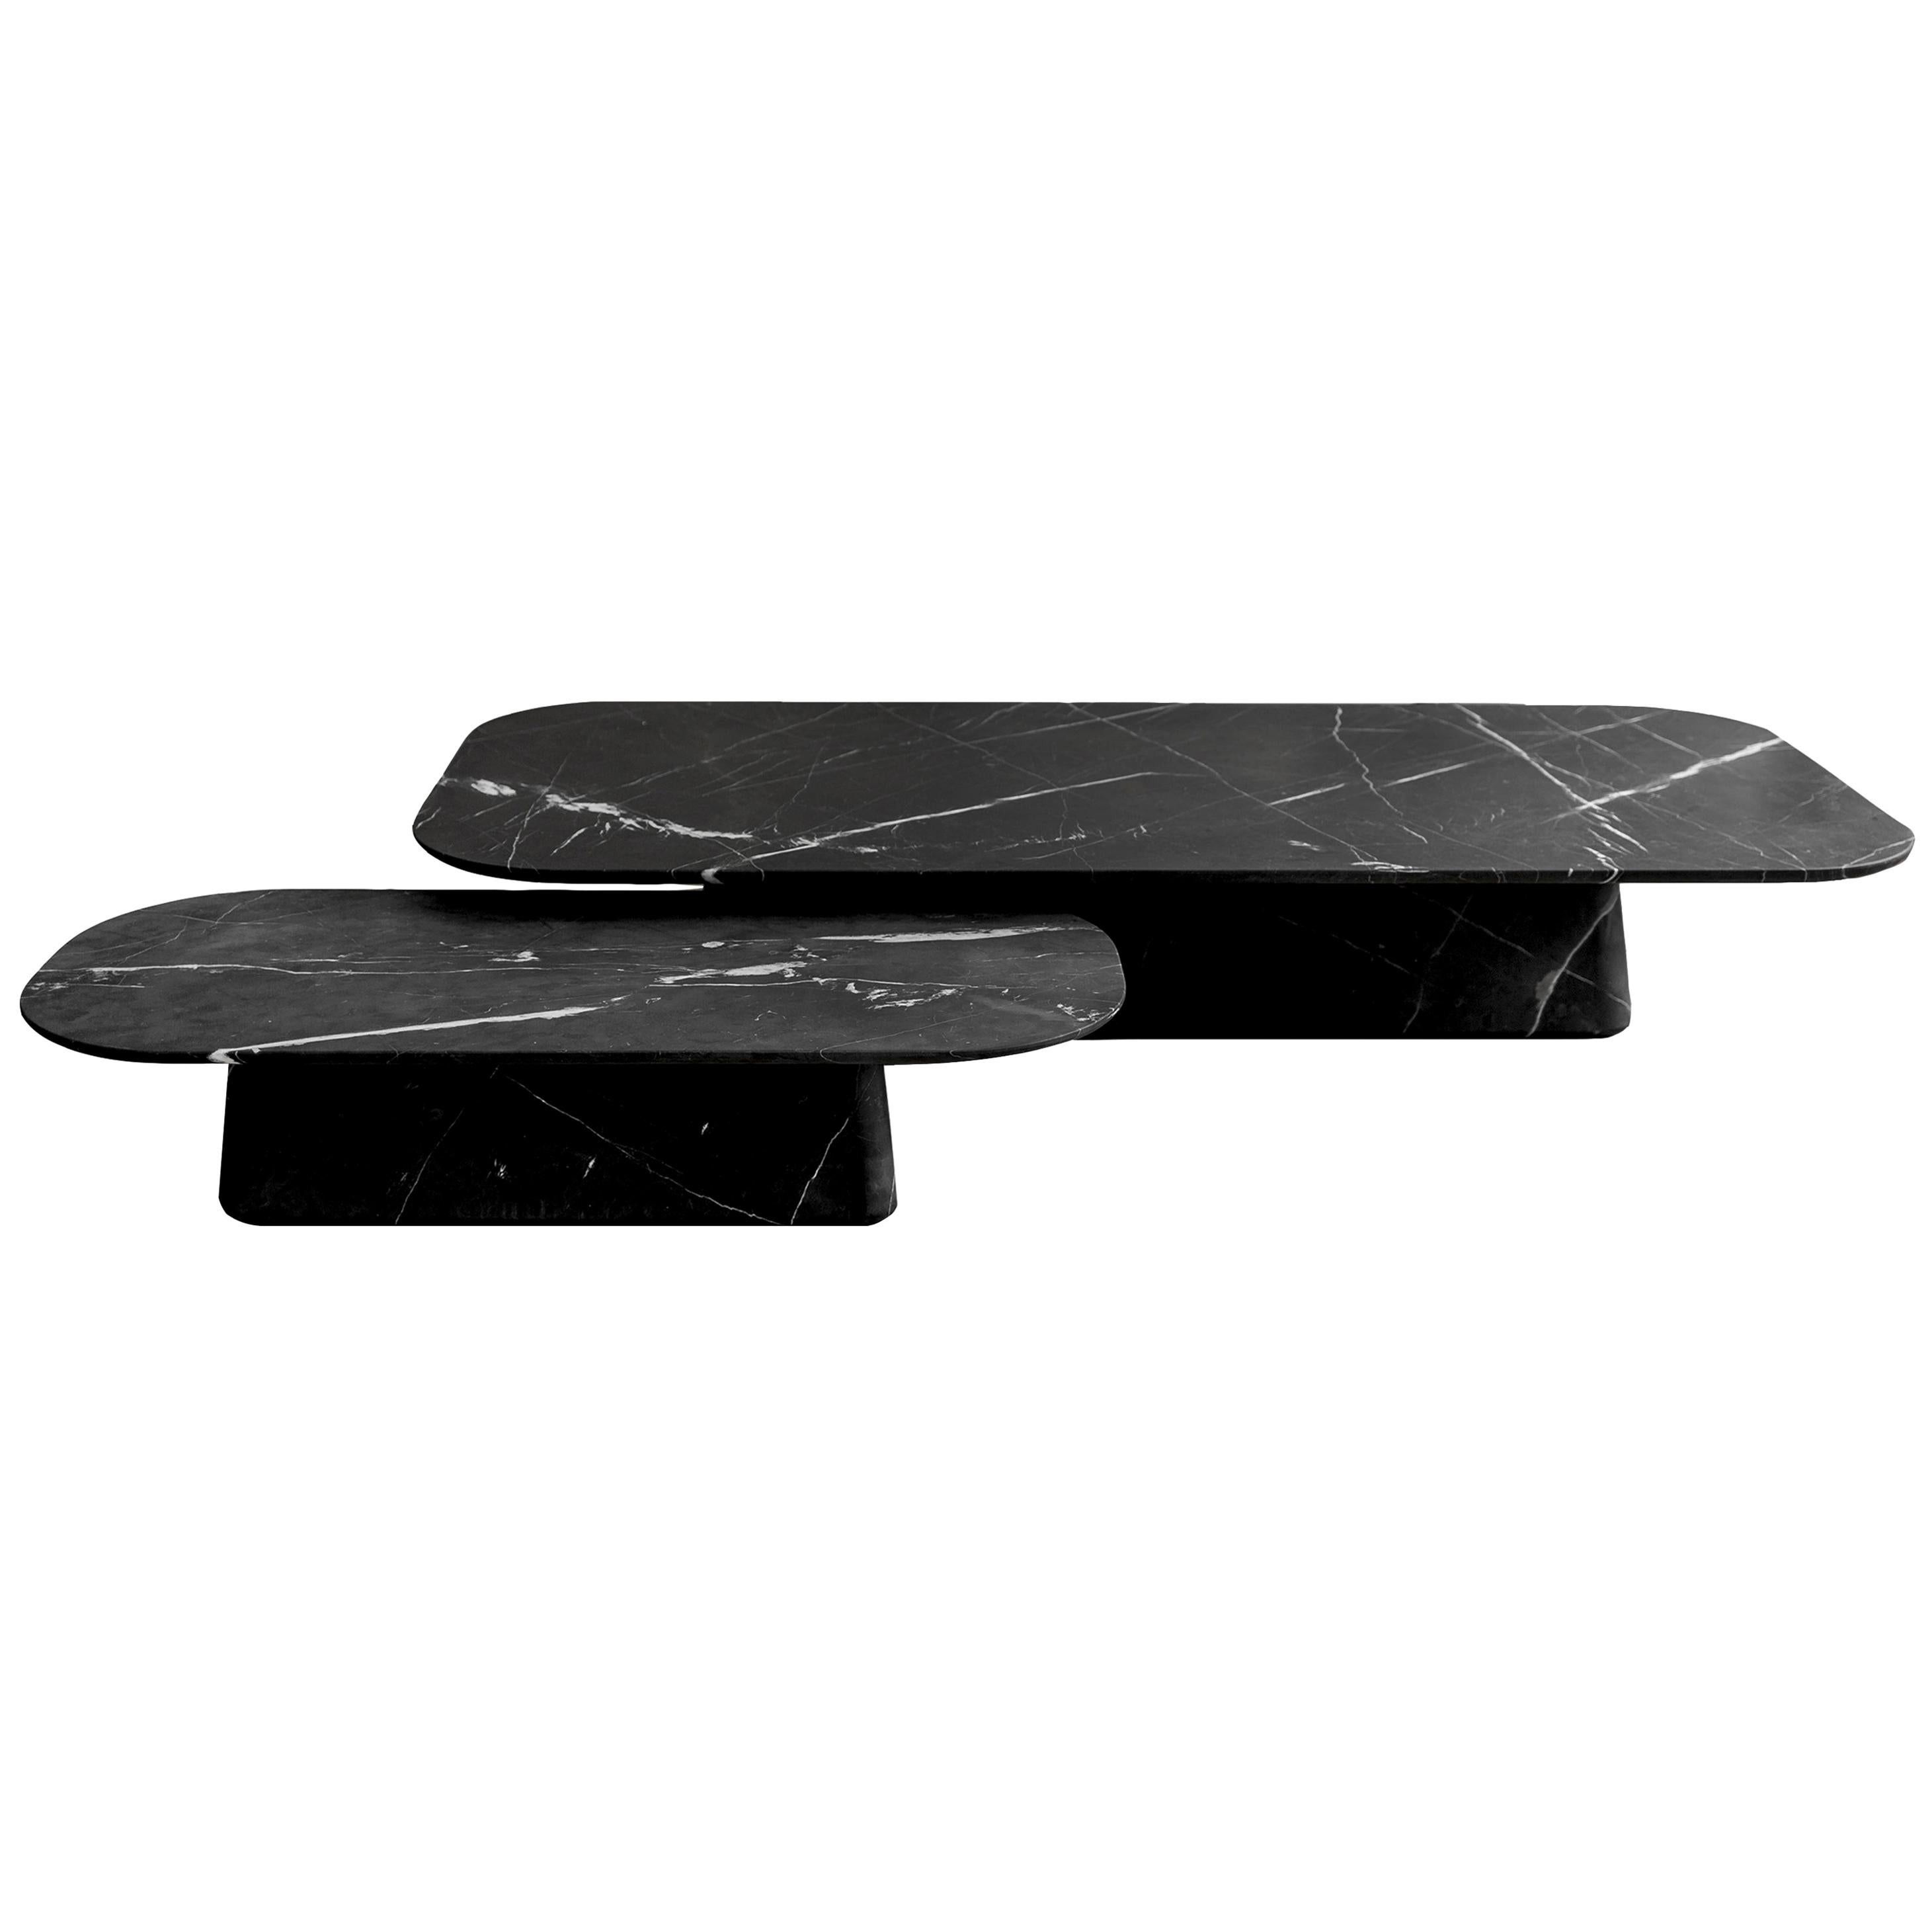 Two Pedestal Coffee Tables in Black Marble Set